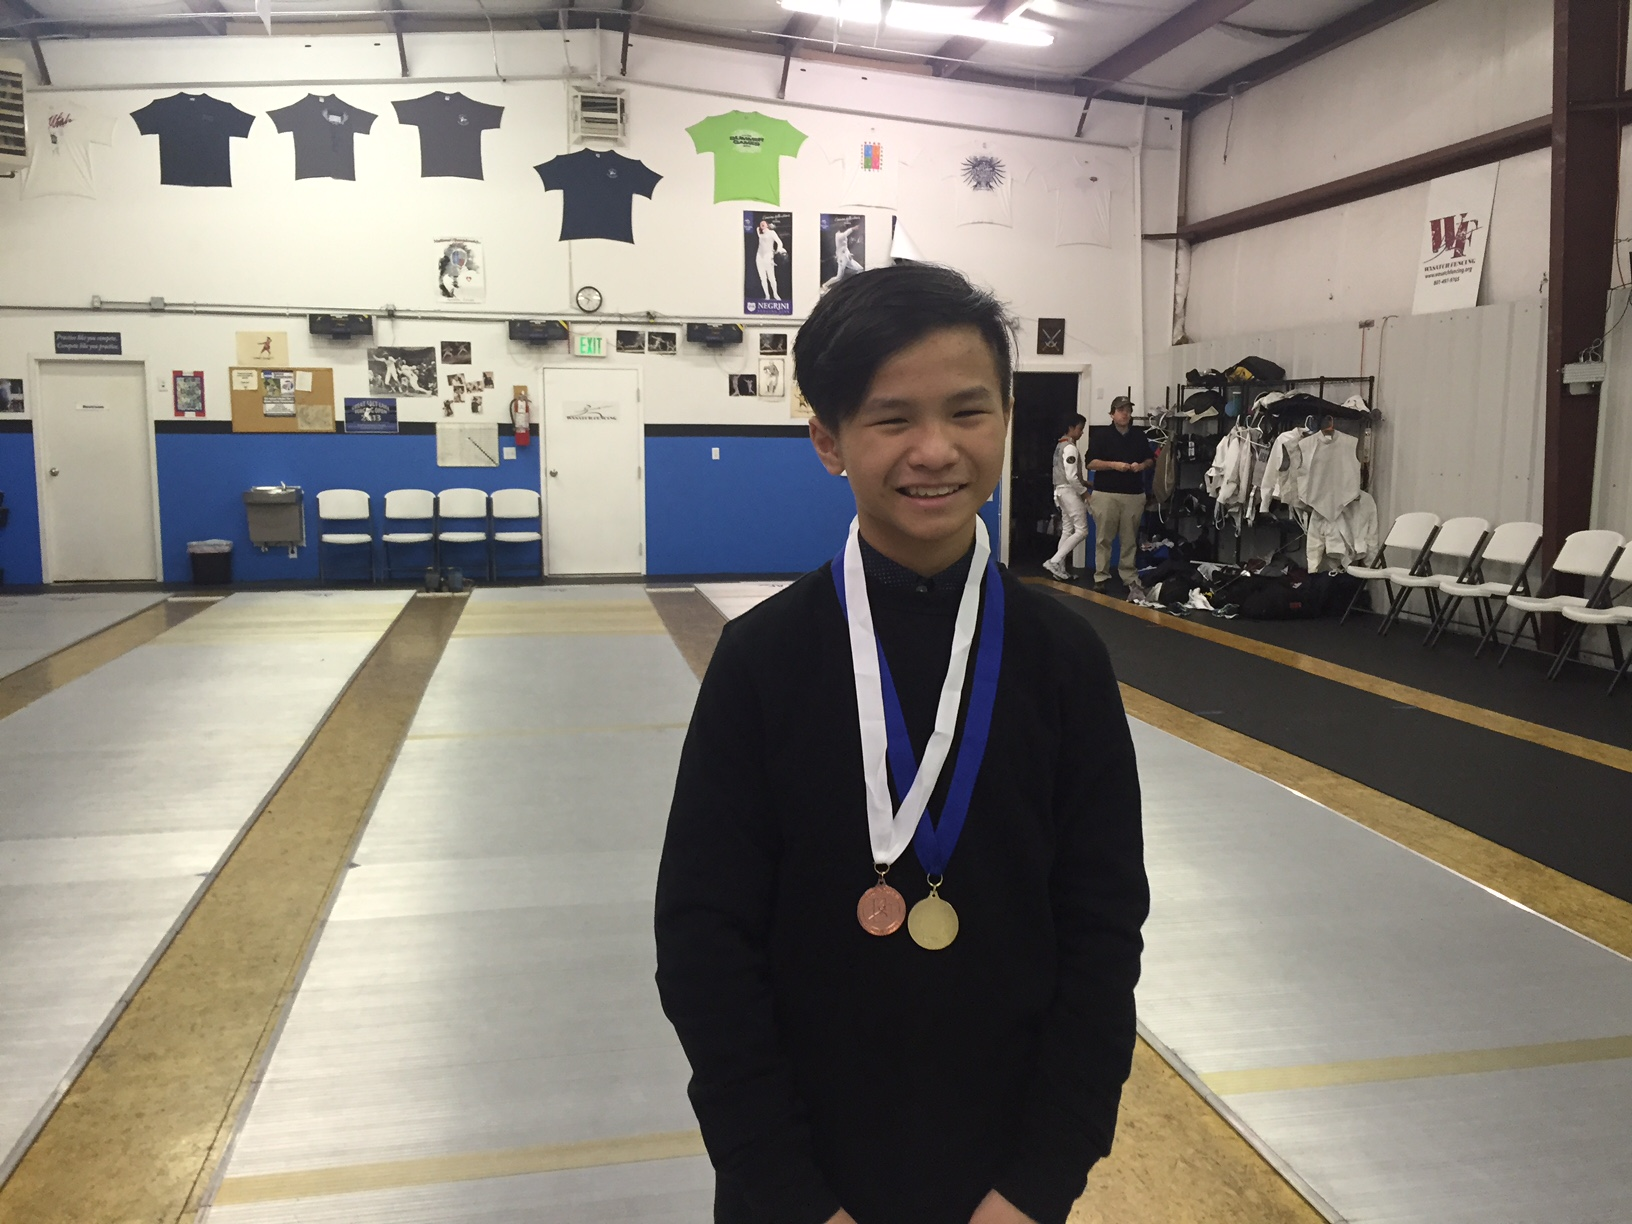 Medaling at local youth tournaments